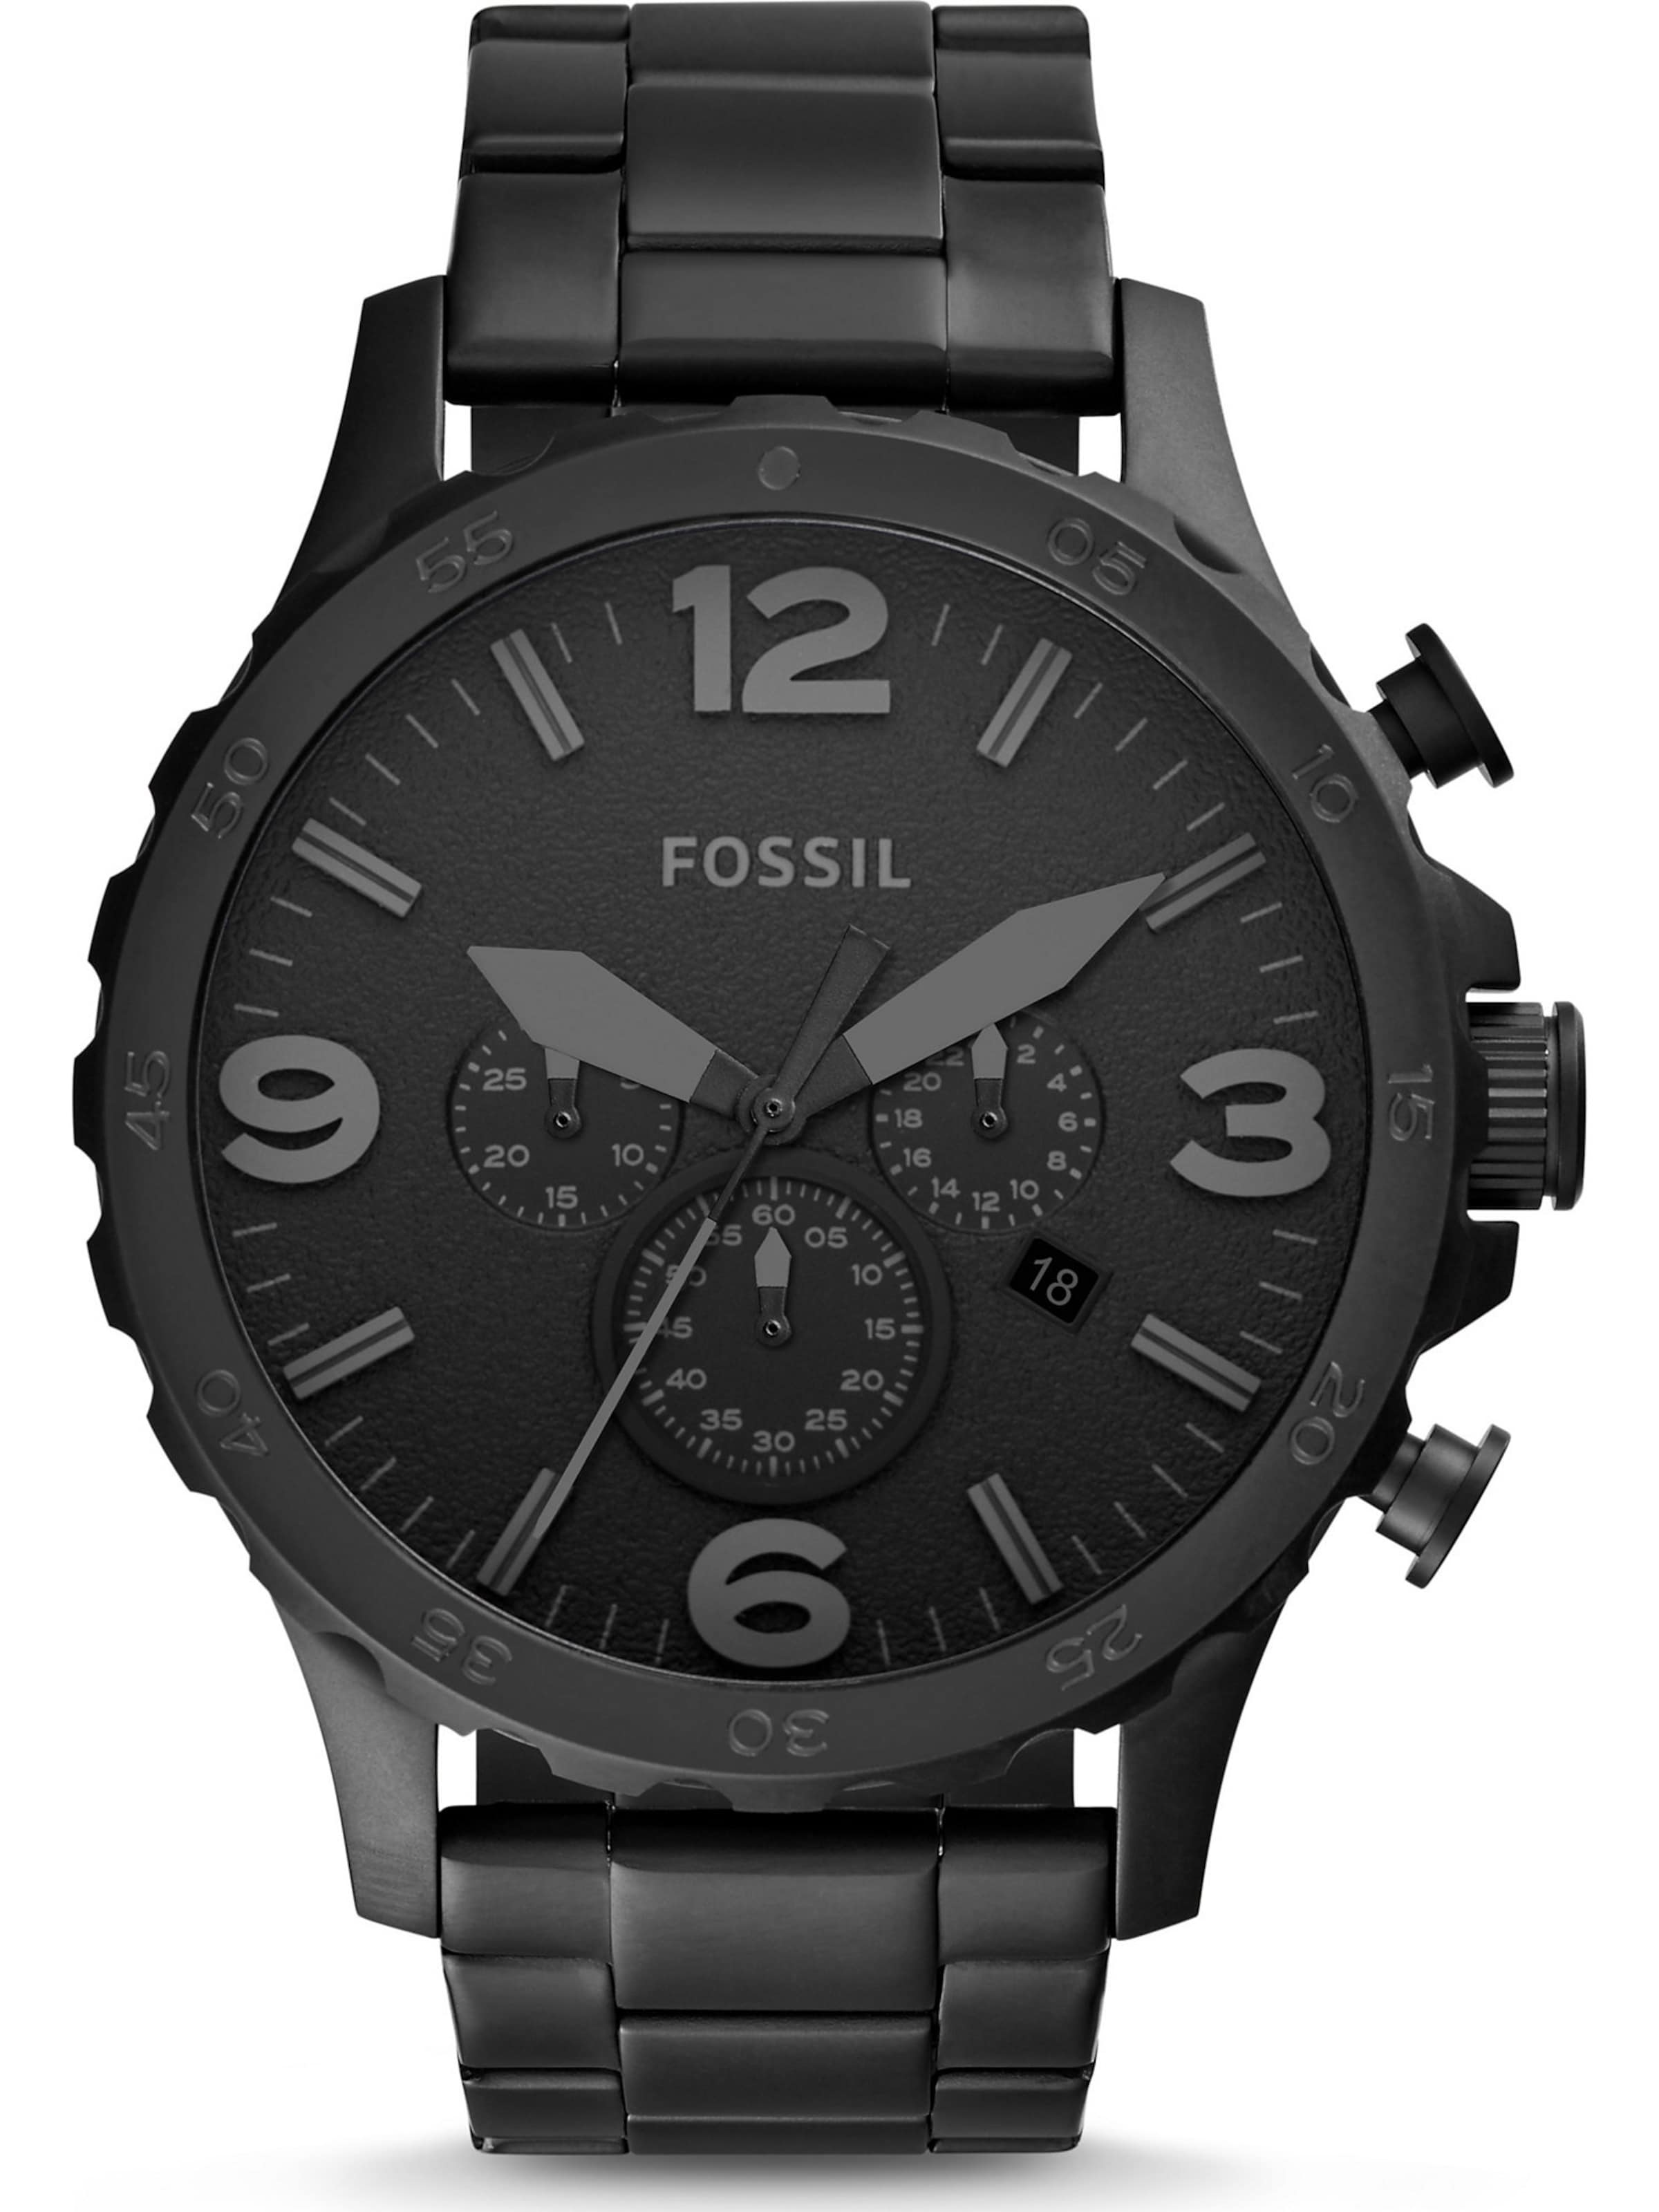 Fossil Fossil 'nate' In Fossil Chronograph 'nate' Schwarz Chronograph 'nate' In Chronograph Schwarz 0nwm8N